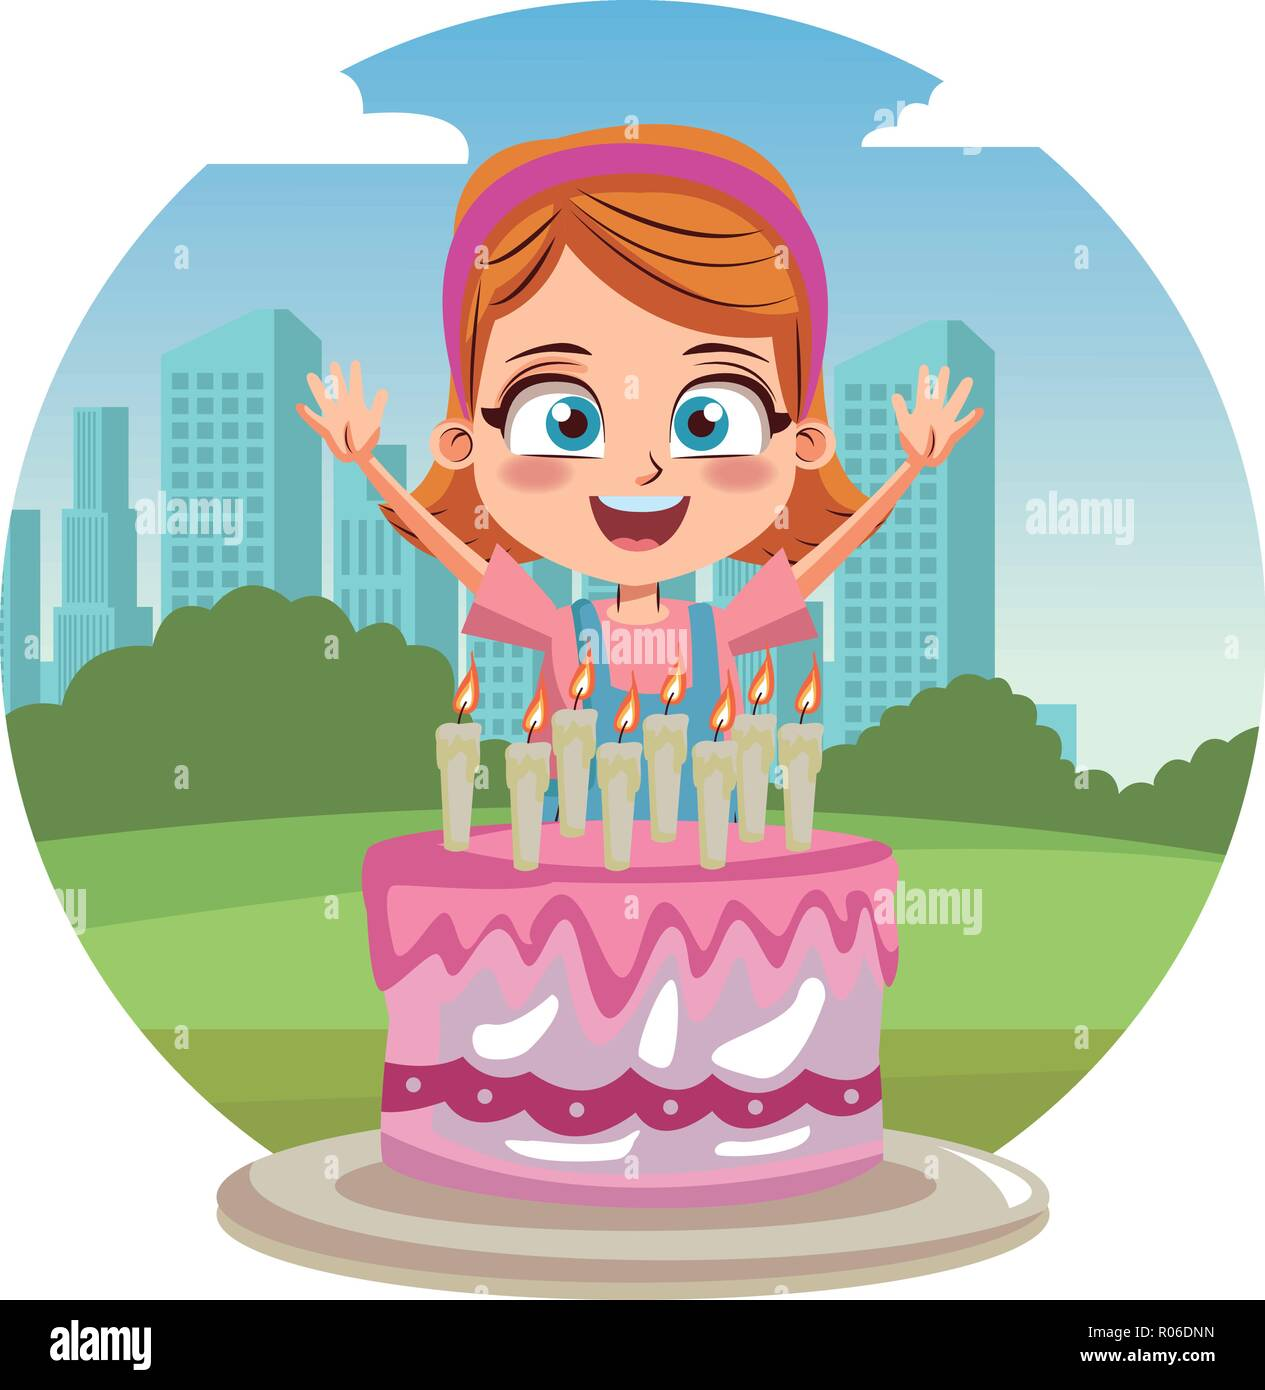 Astounding Girl Birthday Party With Cake Cartoon Over Cityscape Round Icon Funny Birthday Cards Online Alyptdamsfinfo